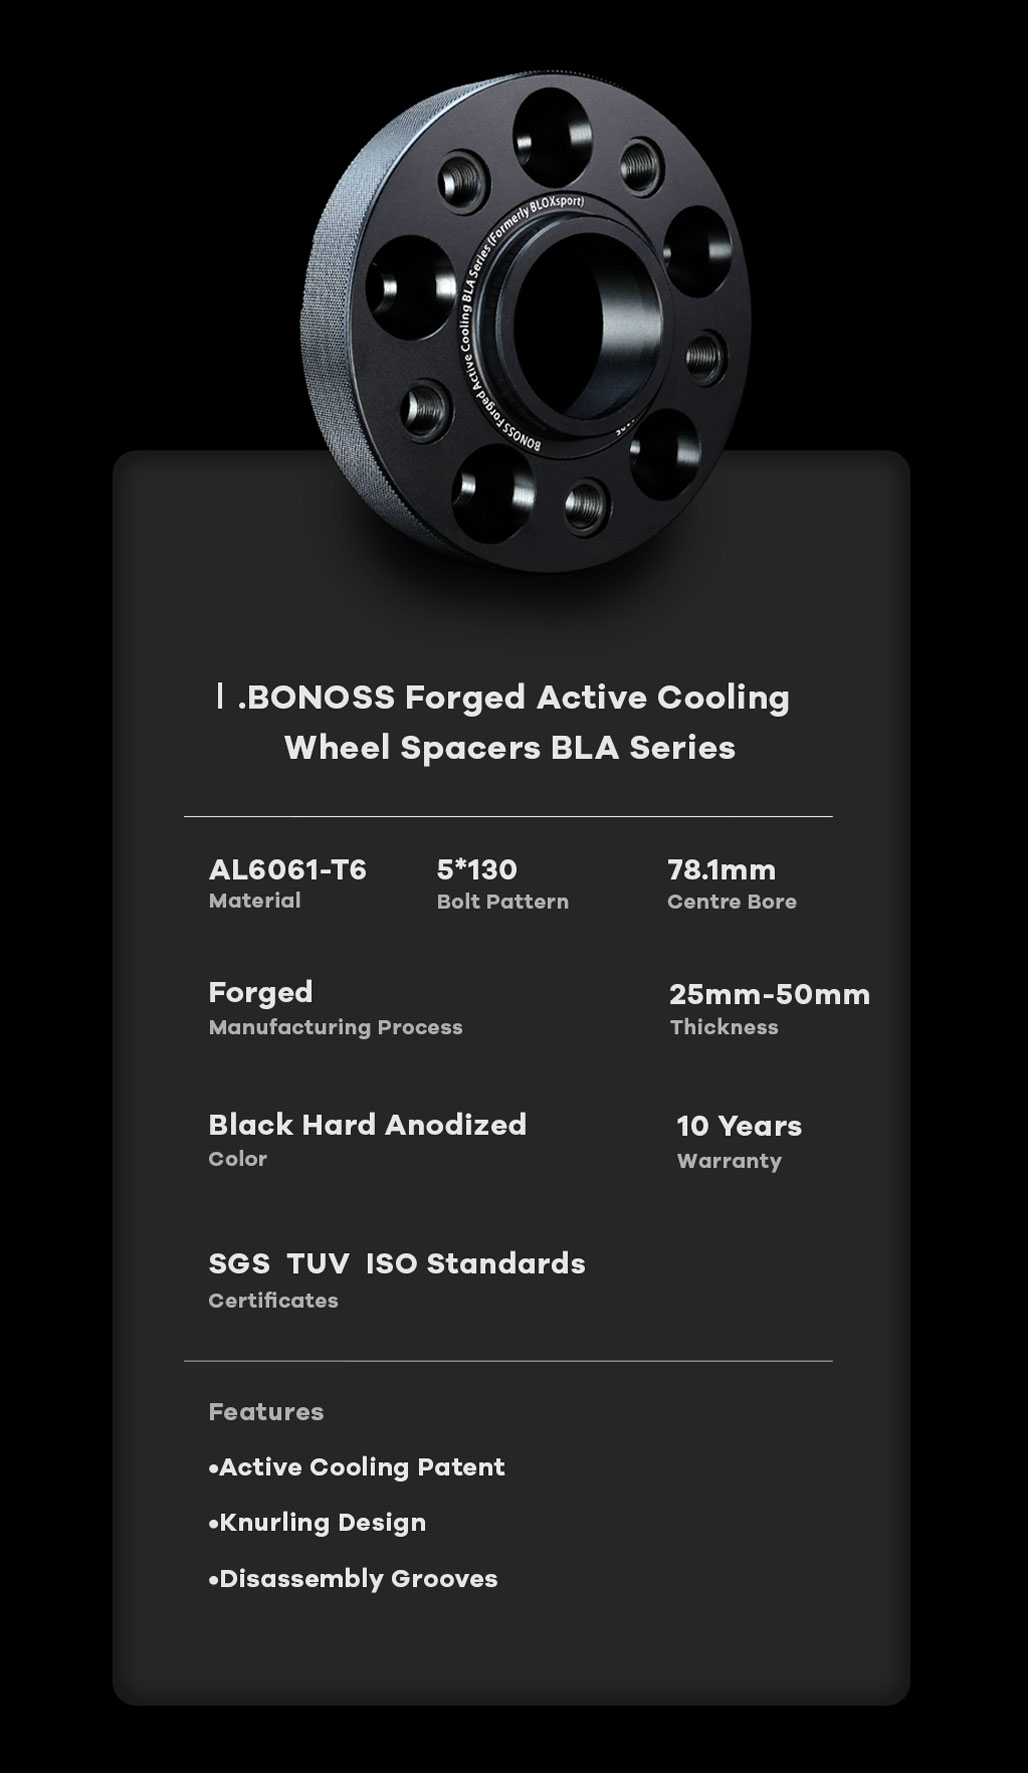 BONOSS Forged Active Cooling Hubcentric Wheel Spacers 5x130 Wheel Adapters 6061-T6 Aluminum CB78.1 Wheel Spacers